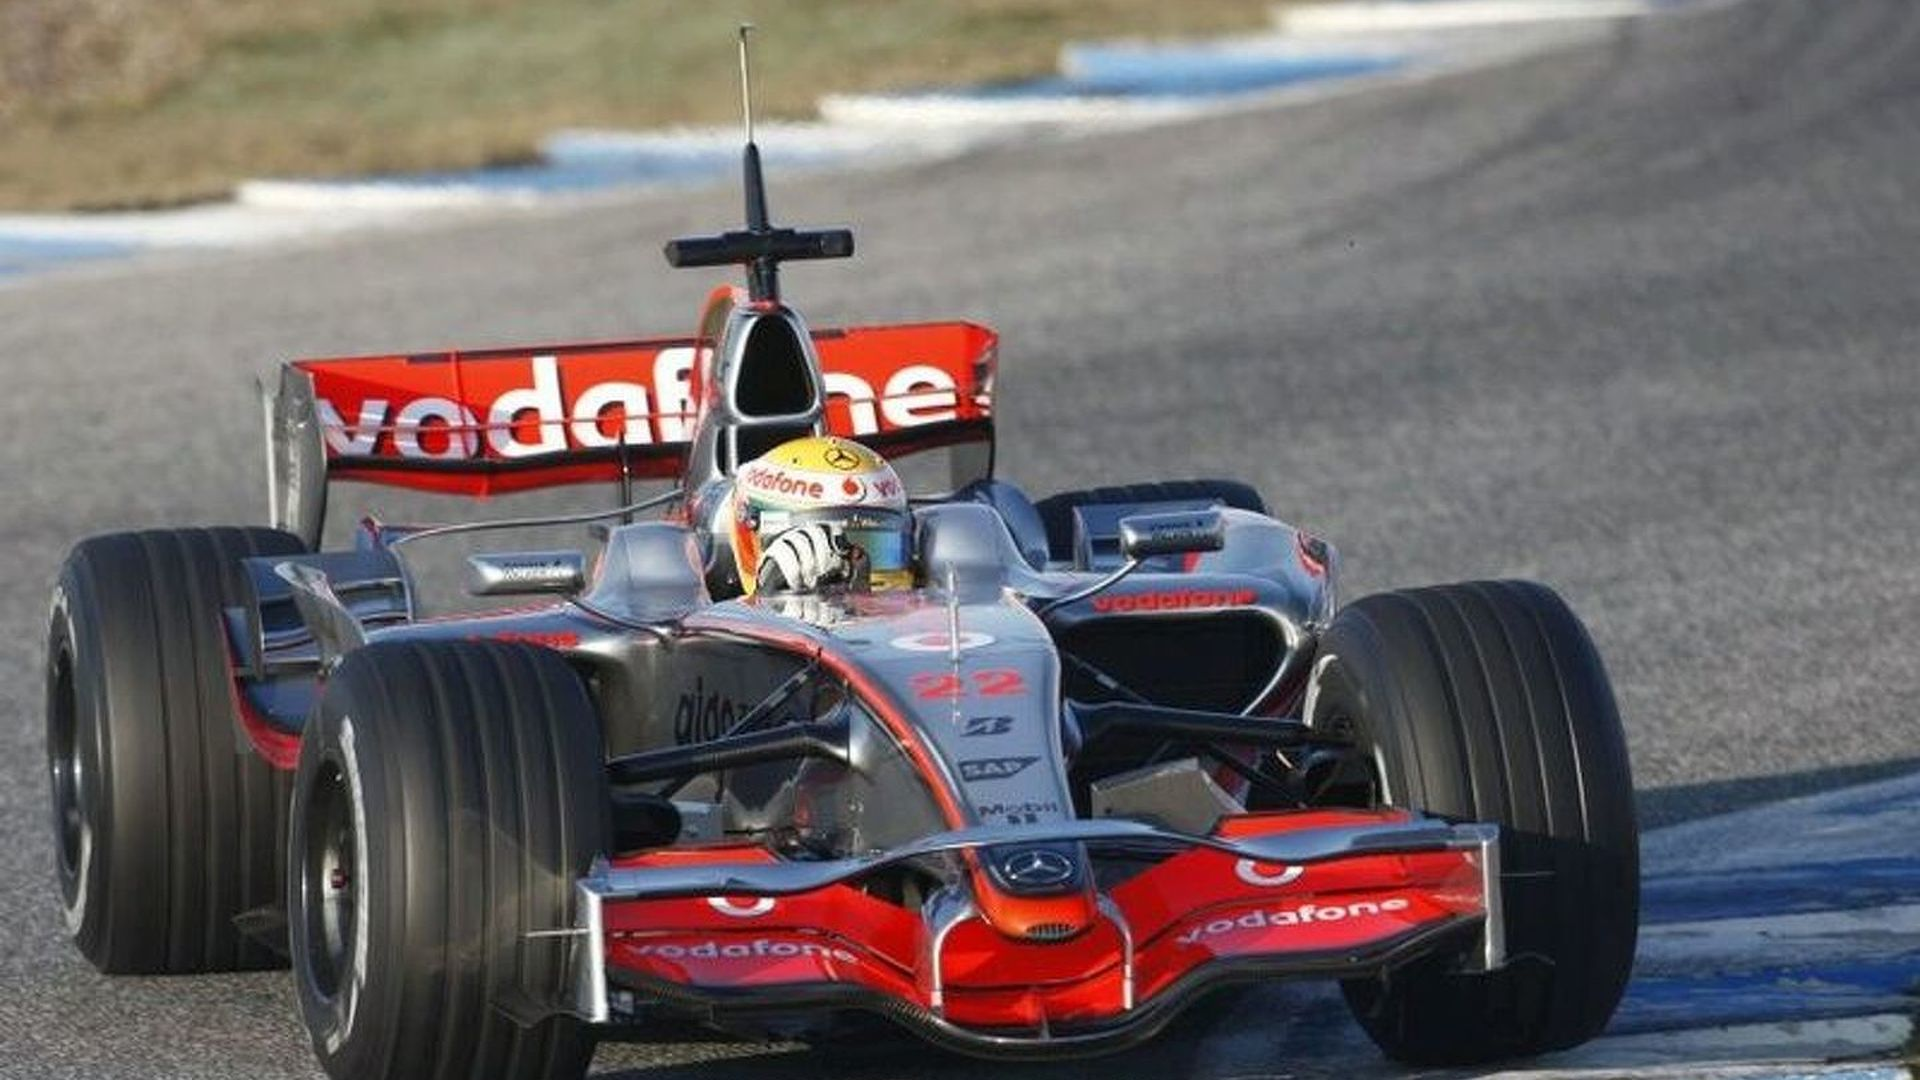 McLaren Boss Ron Dennis Summoned for F1 Spying Investigation